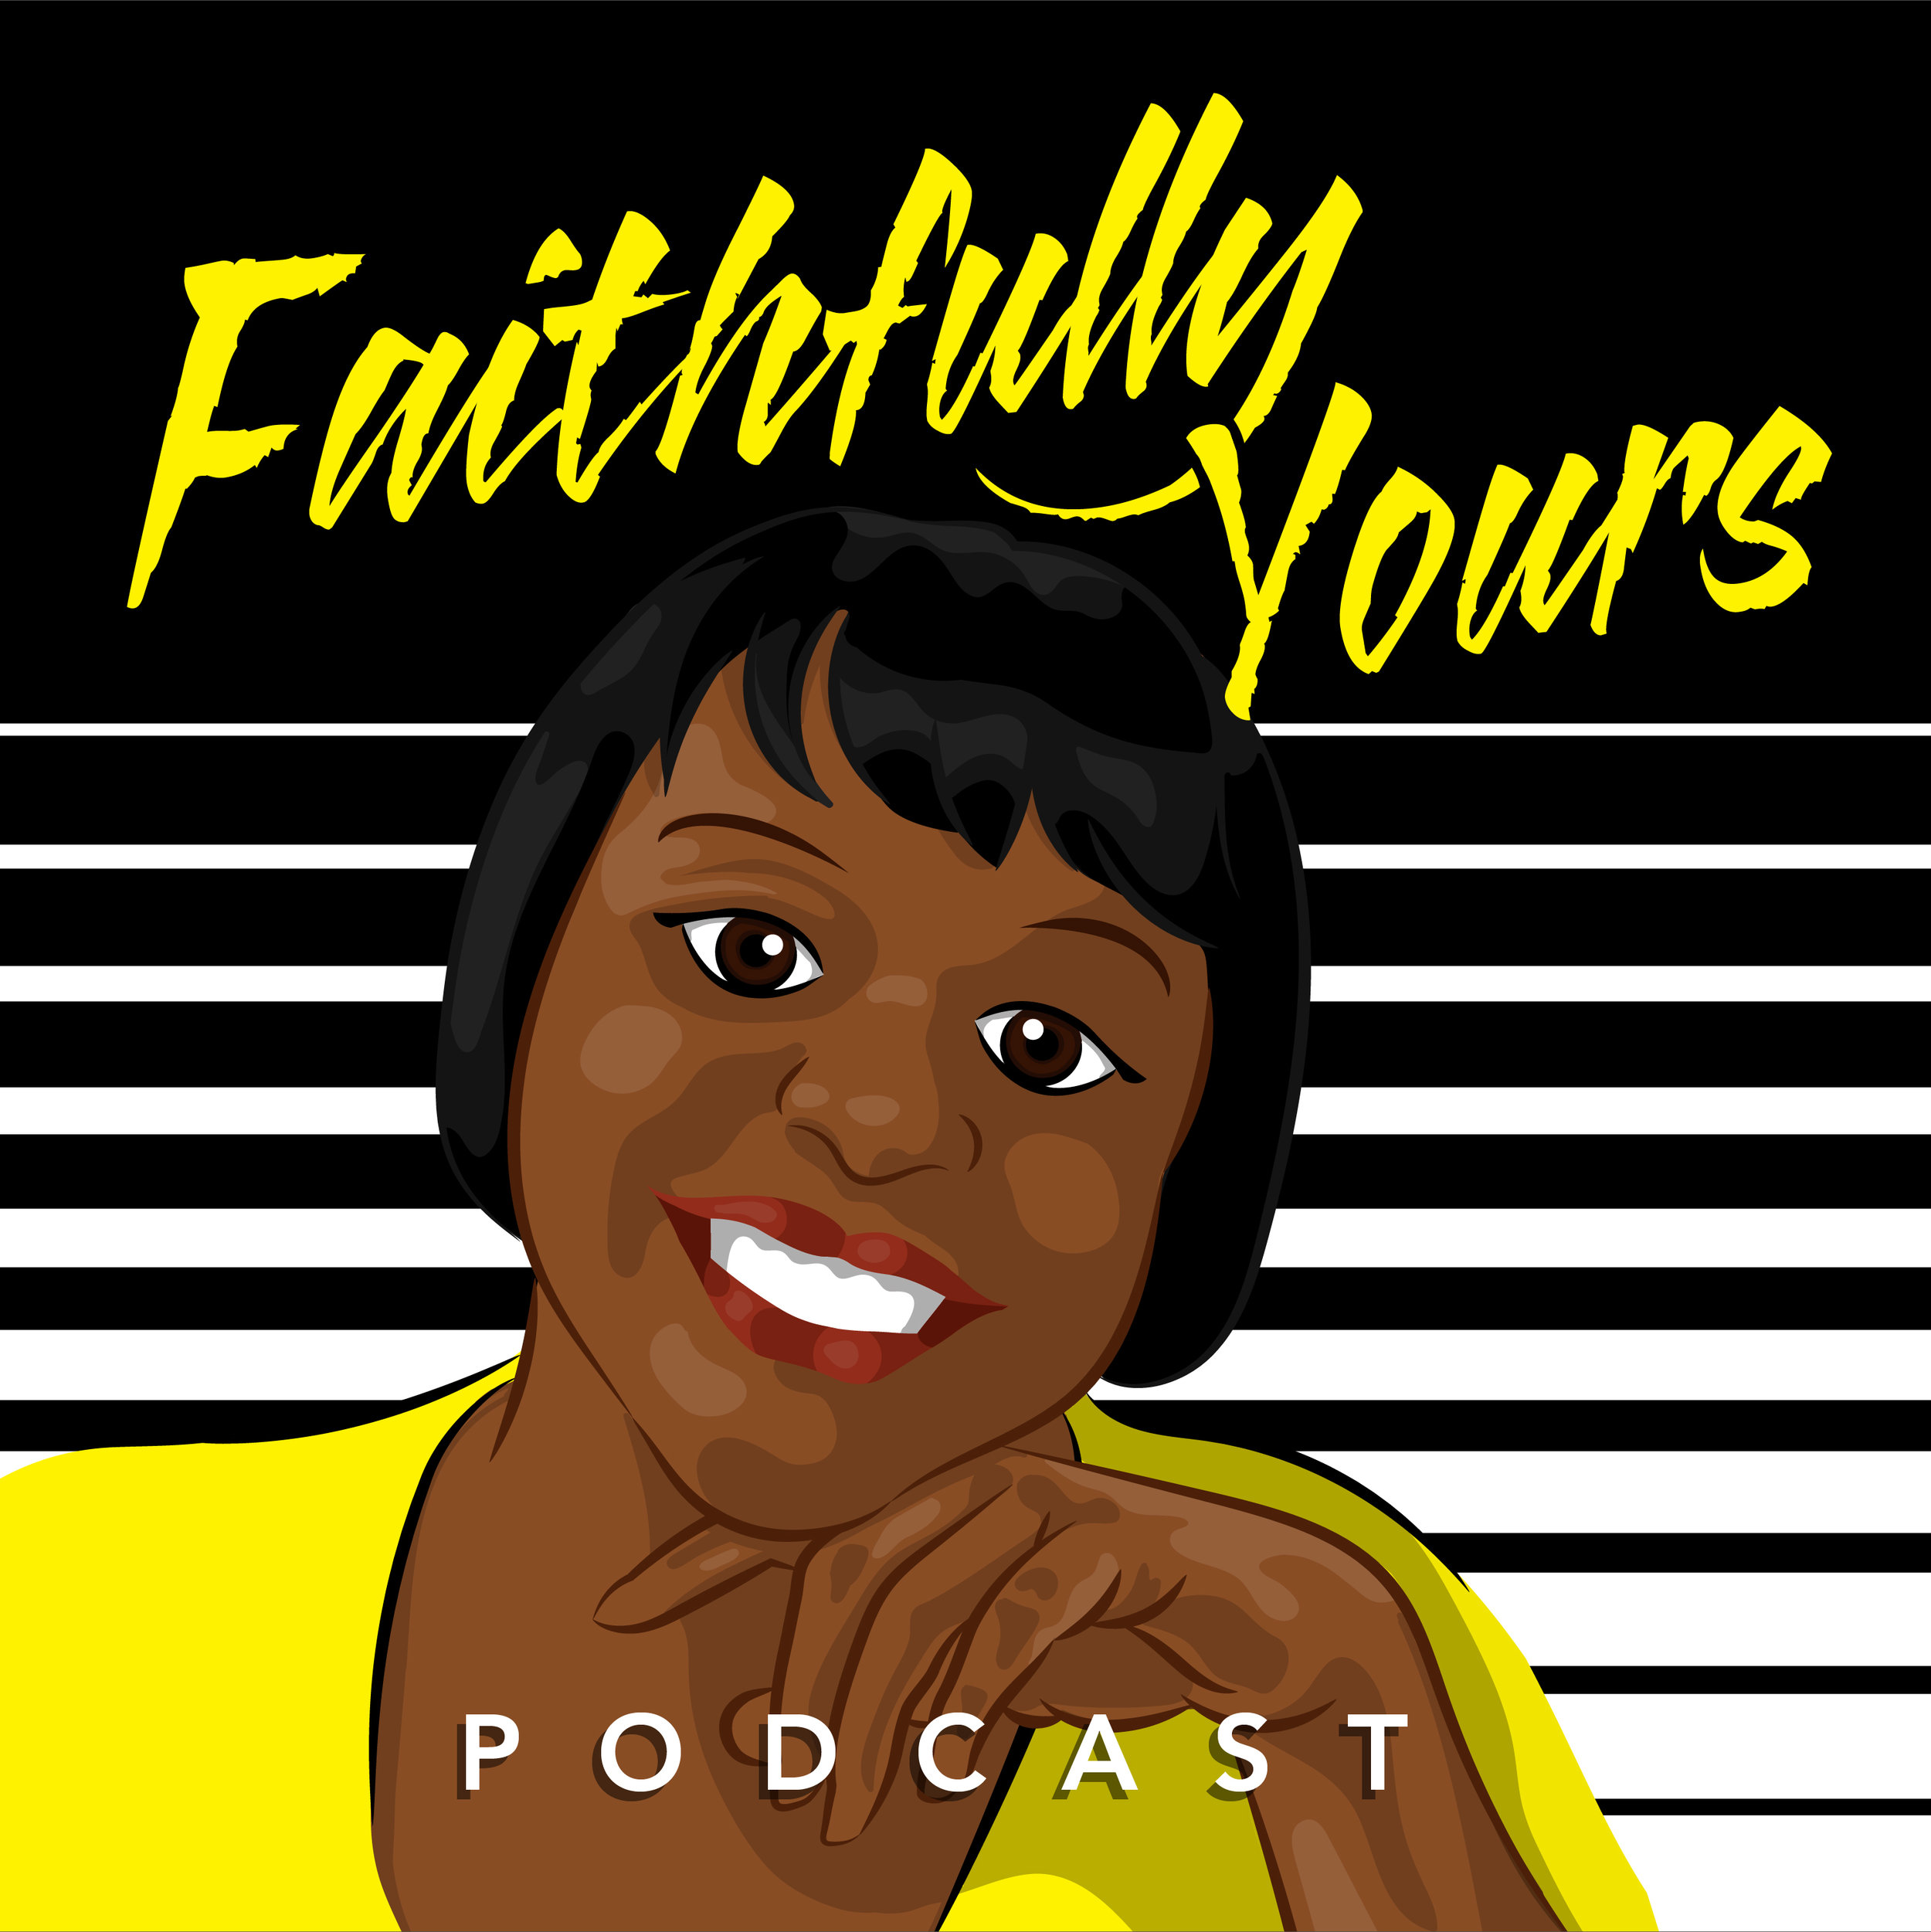 Faithfully yours - hosted by FaithIn this introspective podcast, host Faith discusses her experiences and personal growth and shares her thoughts and opinions on social issues, pop culture, everyday annoyances, and life in general.